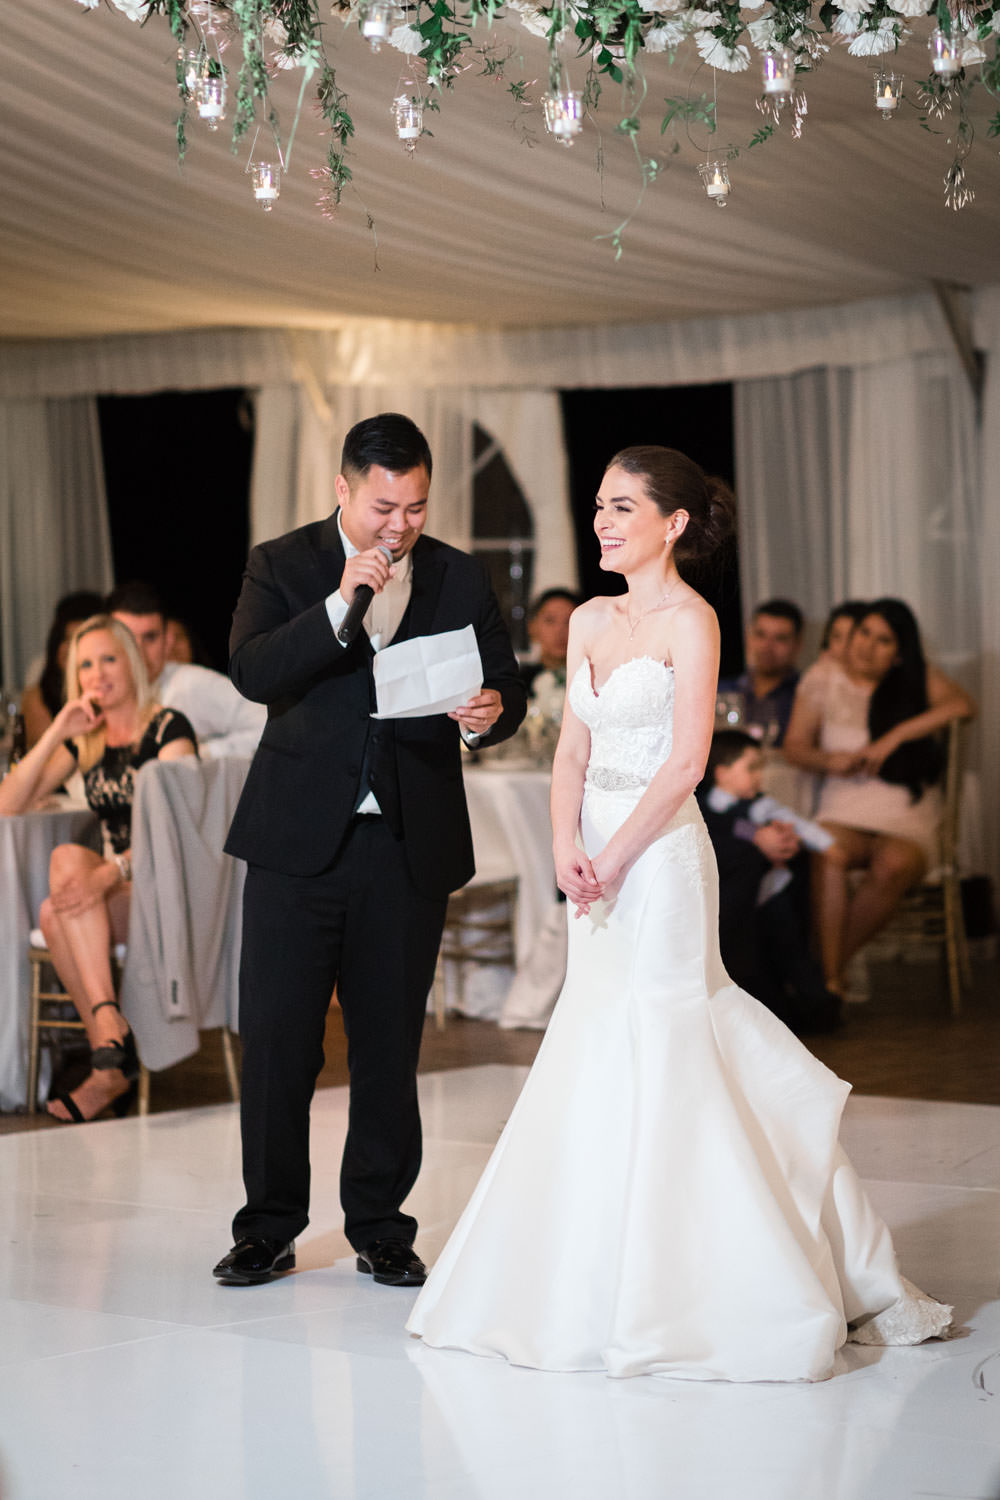 Bride and groom candid photo laughing with reception guests, Cavin Elizabeth Photography